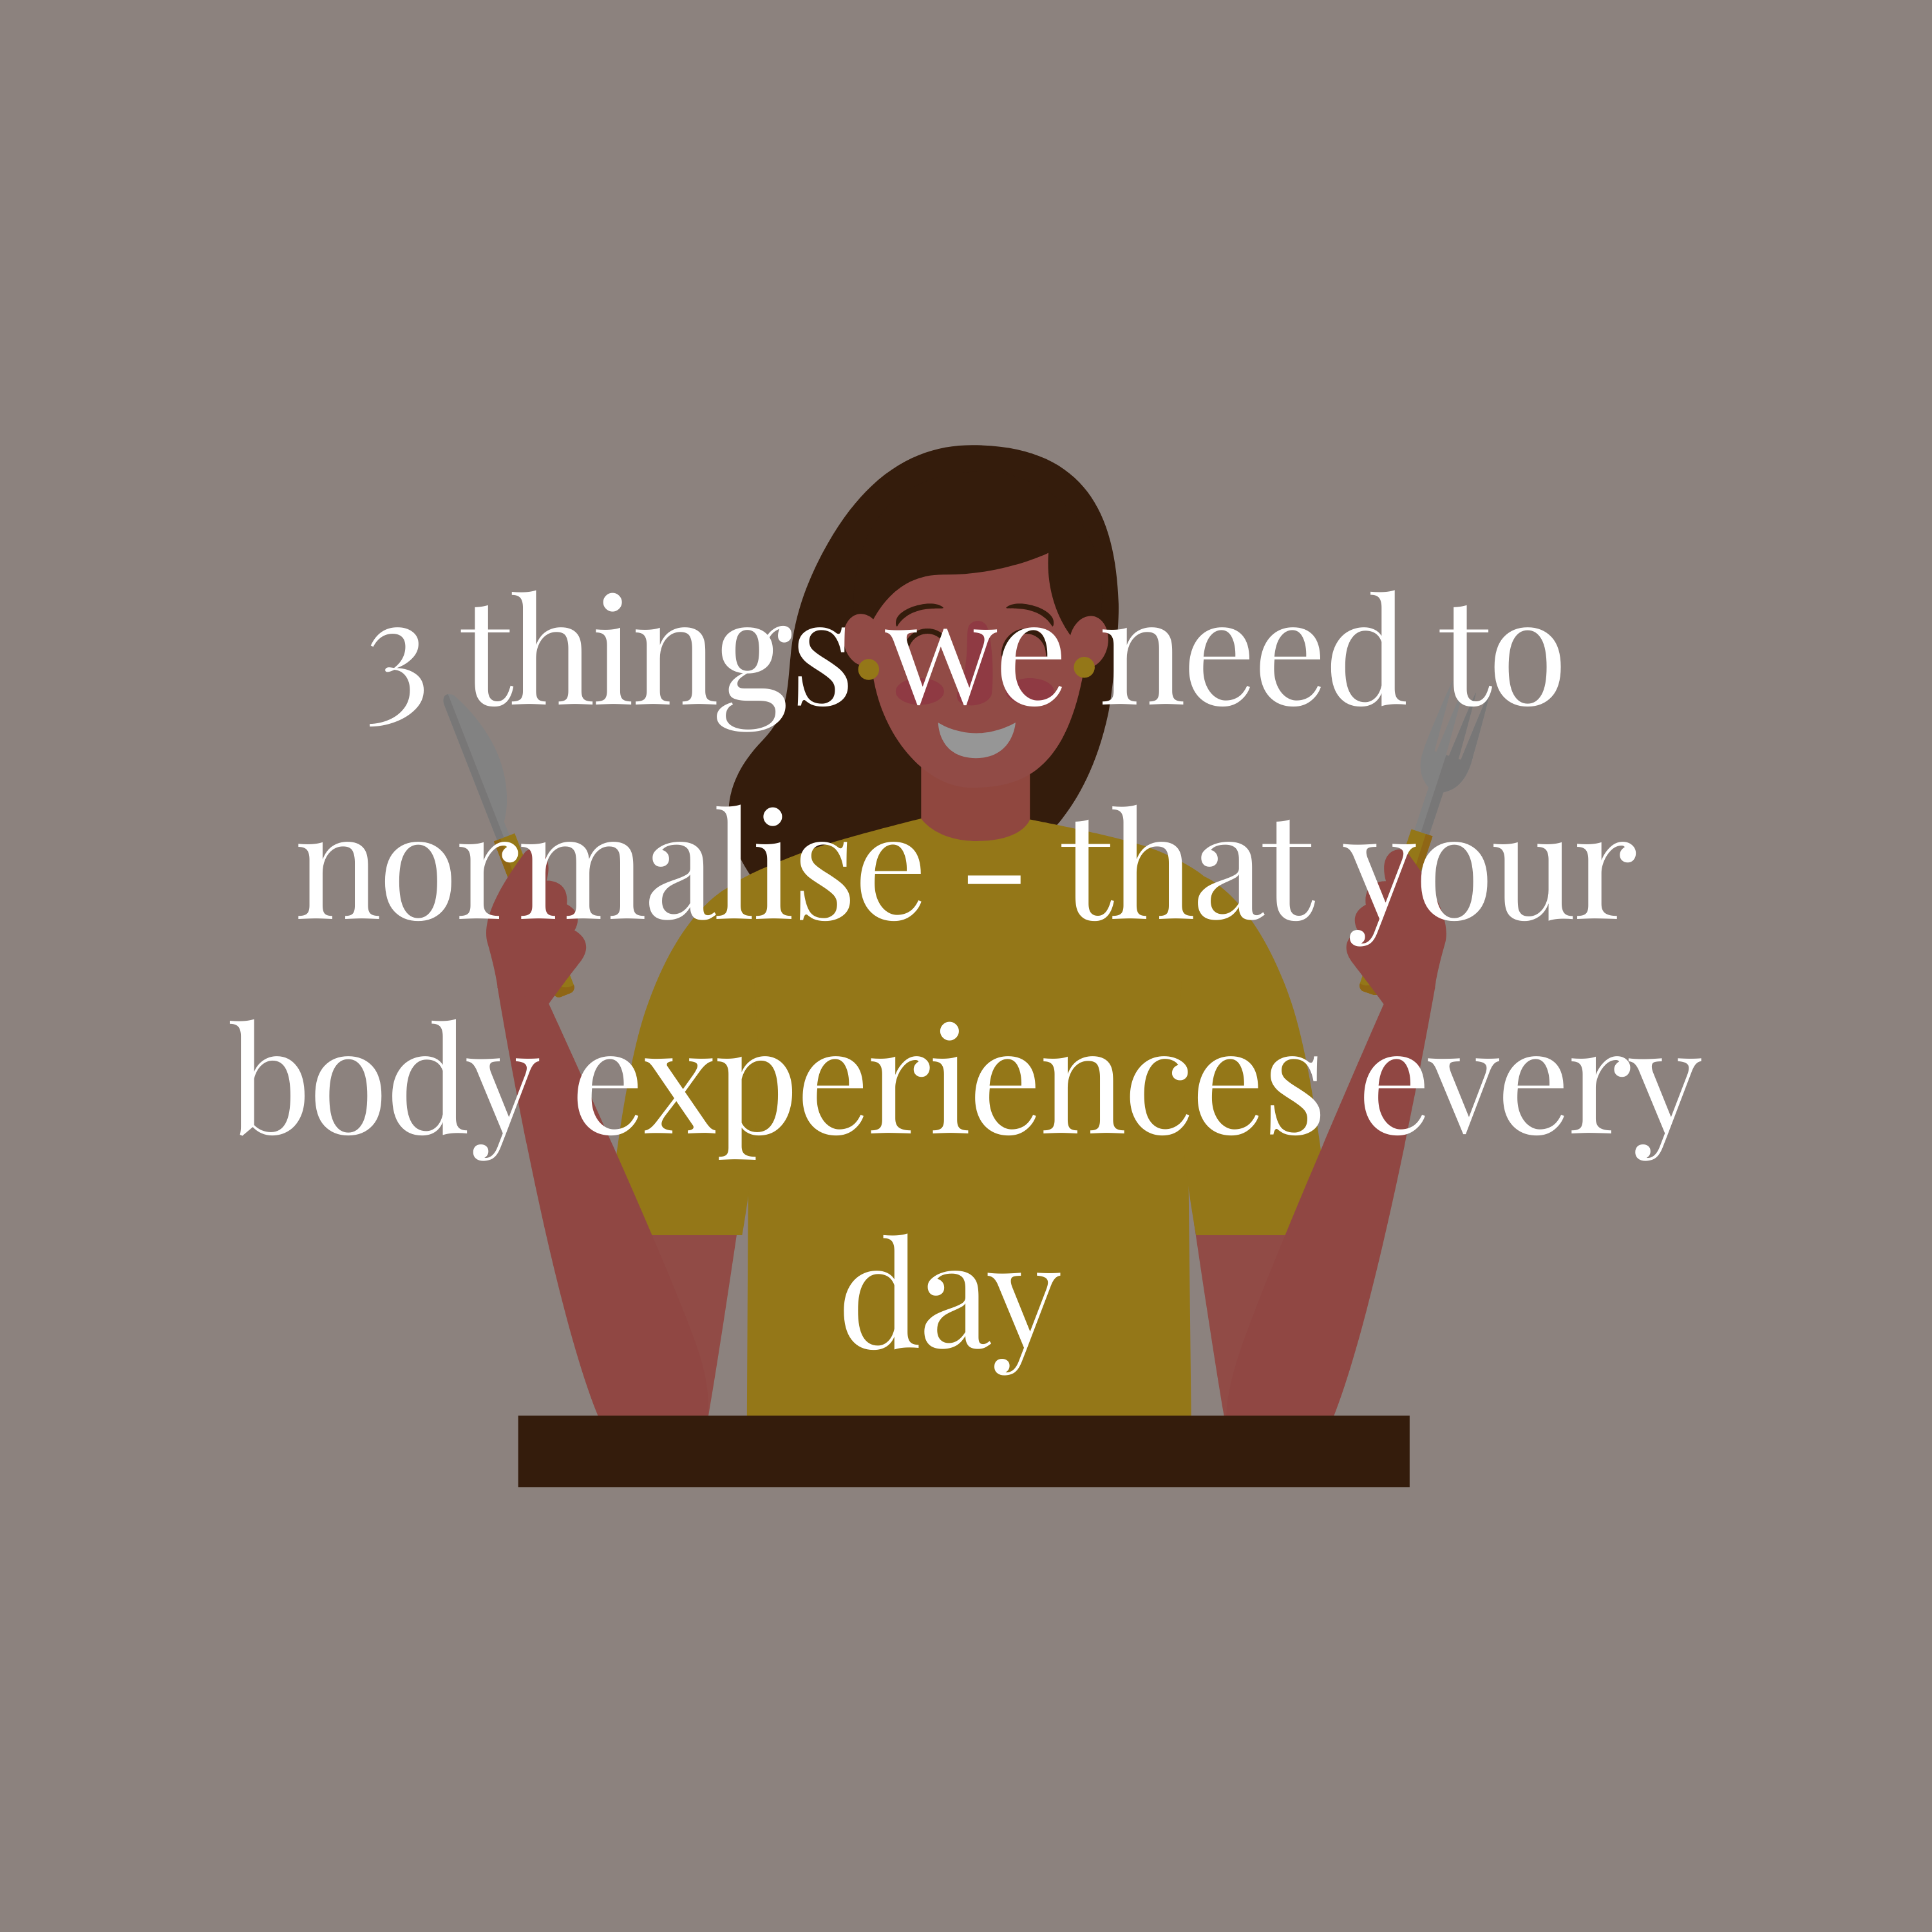 3 things we need to normalise - that your body experiences every day